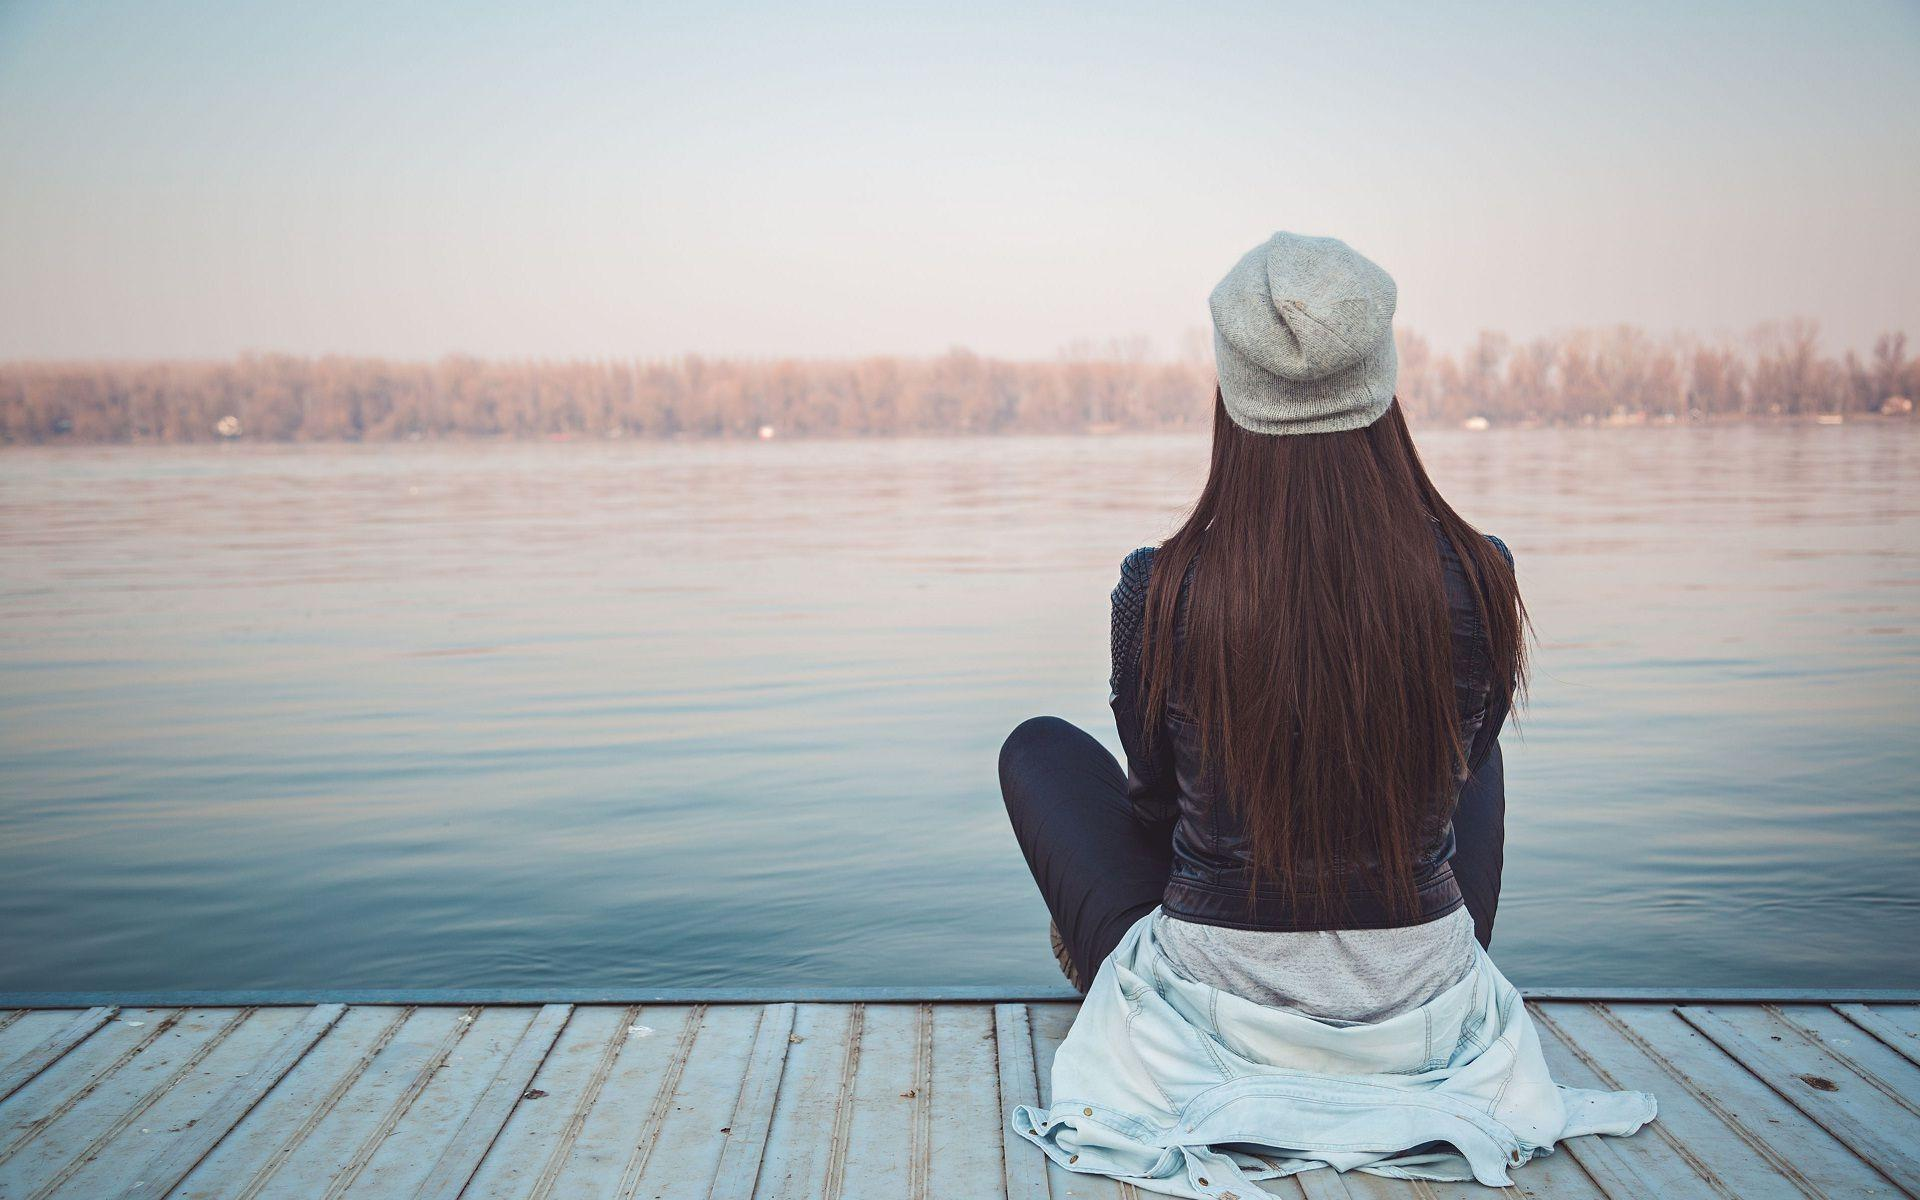 Alone Girl Images, Best Alone Girl Wallpapers in High Quality .